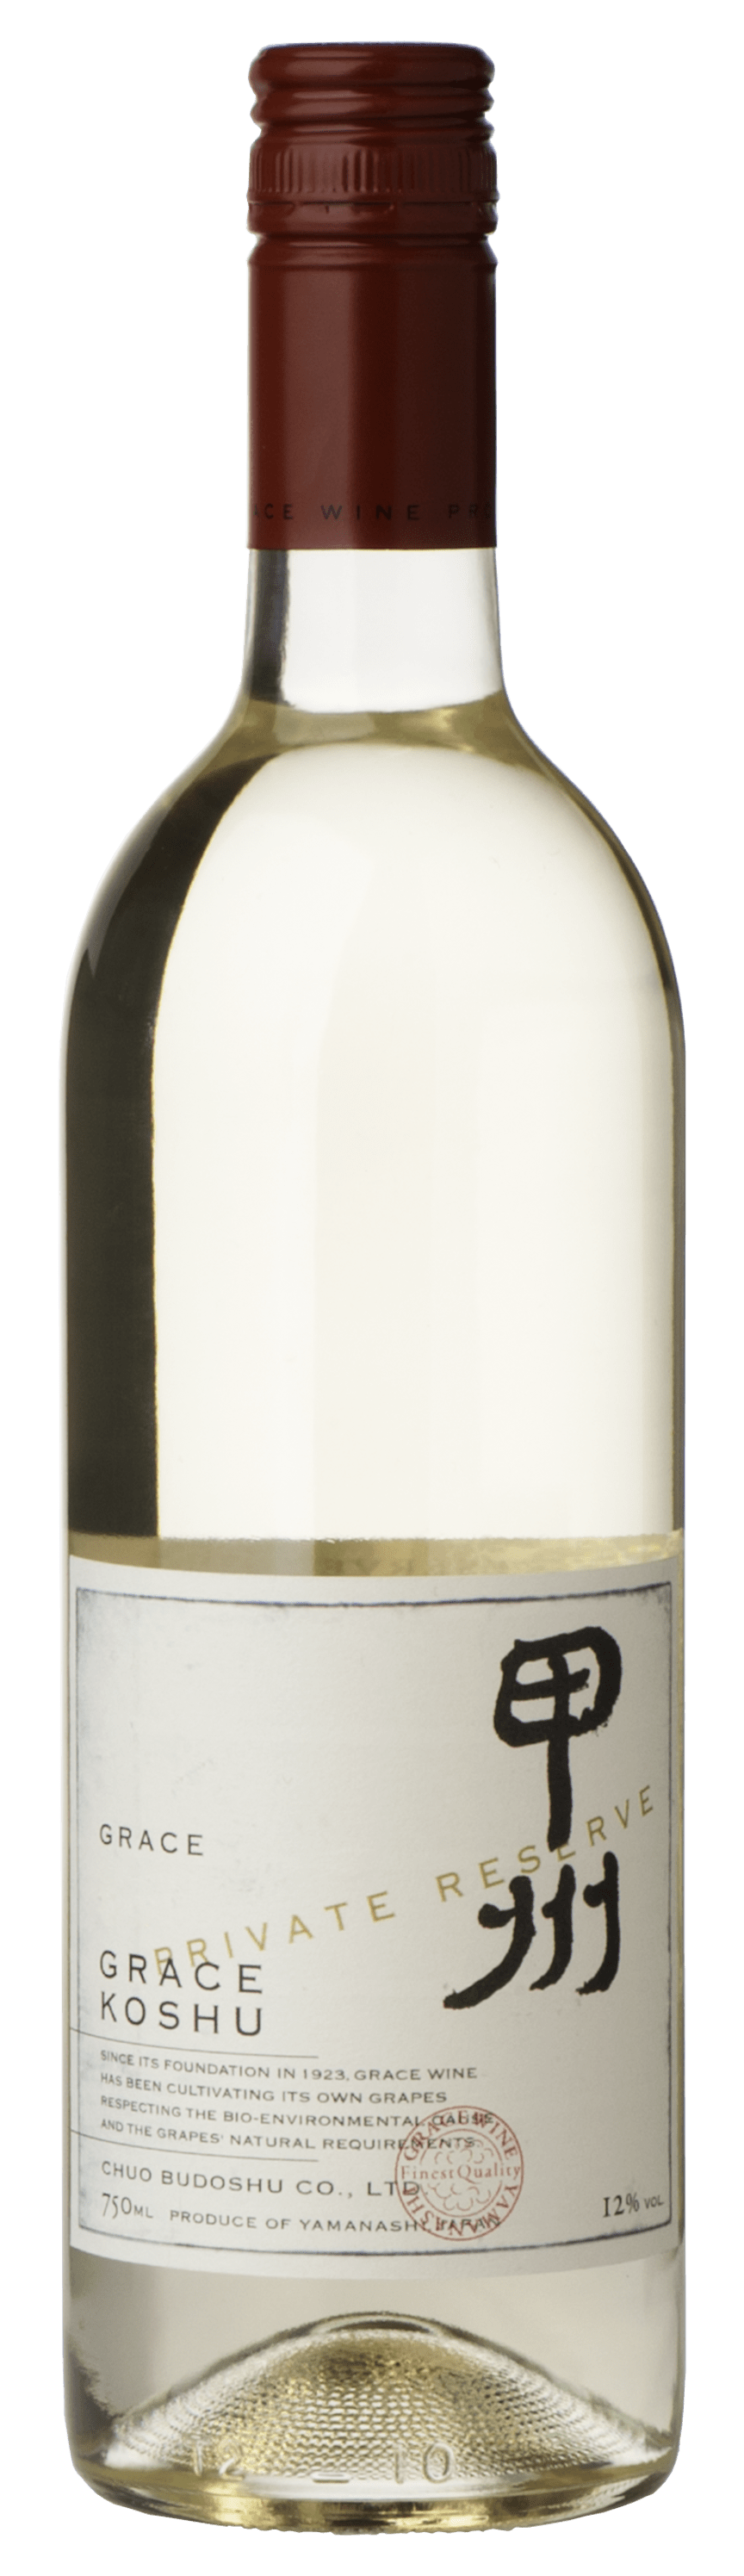 Grace Koshu Private Reserve